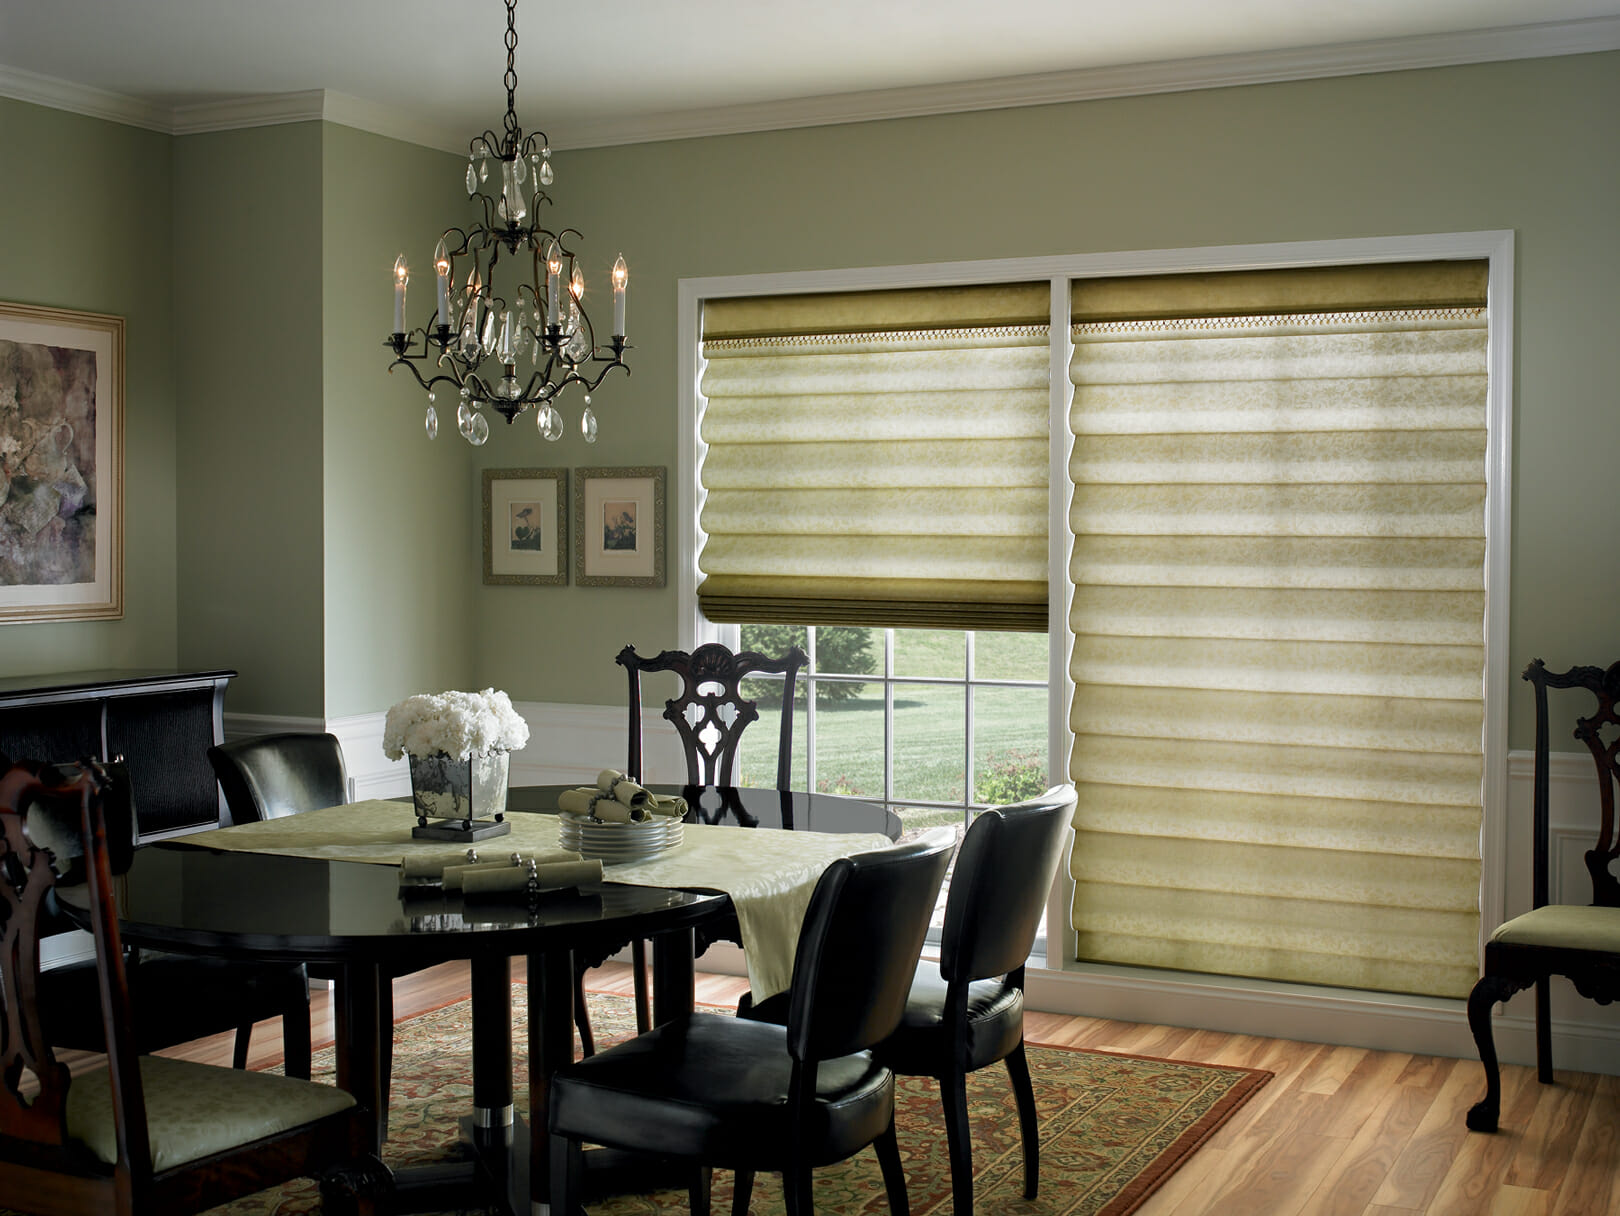 Roman Shades 3 Blind Mice Window Coverings